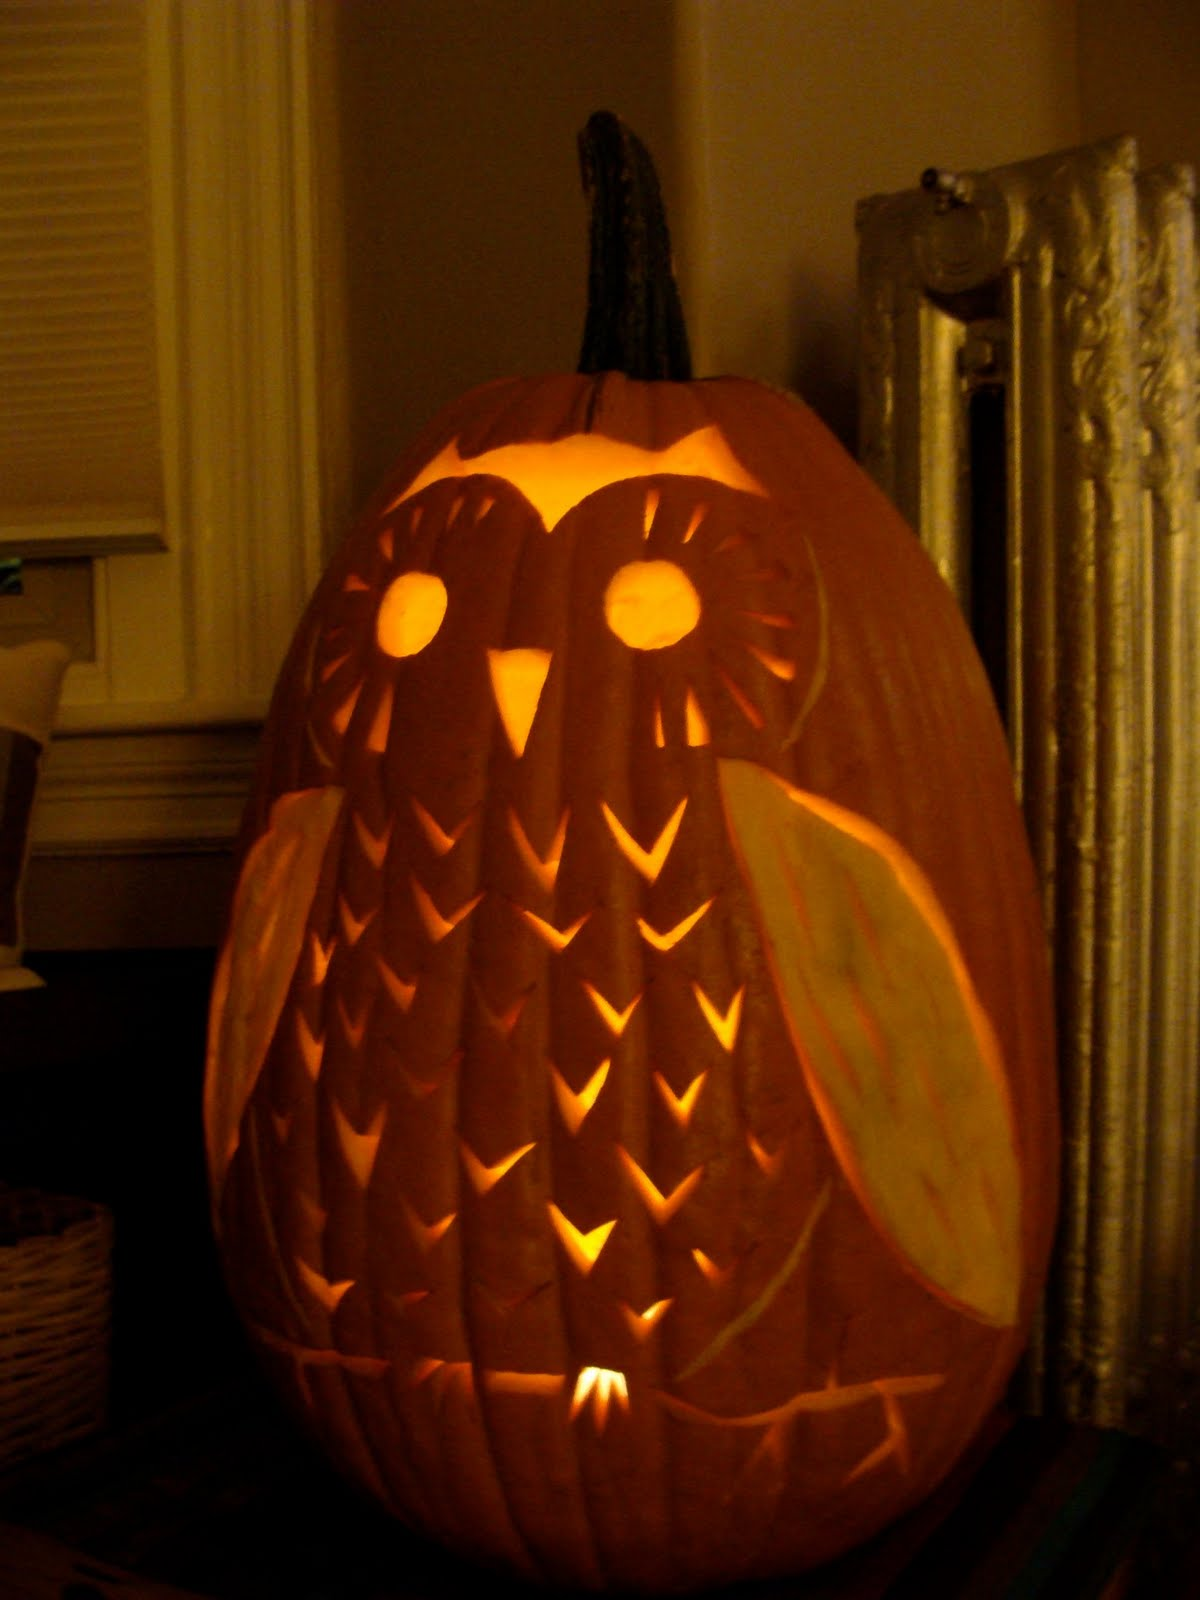 How to create an amazing pumpkin sculptures design ideas for Pumpkin carving ideas owl